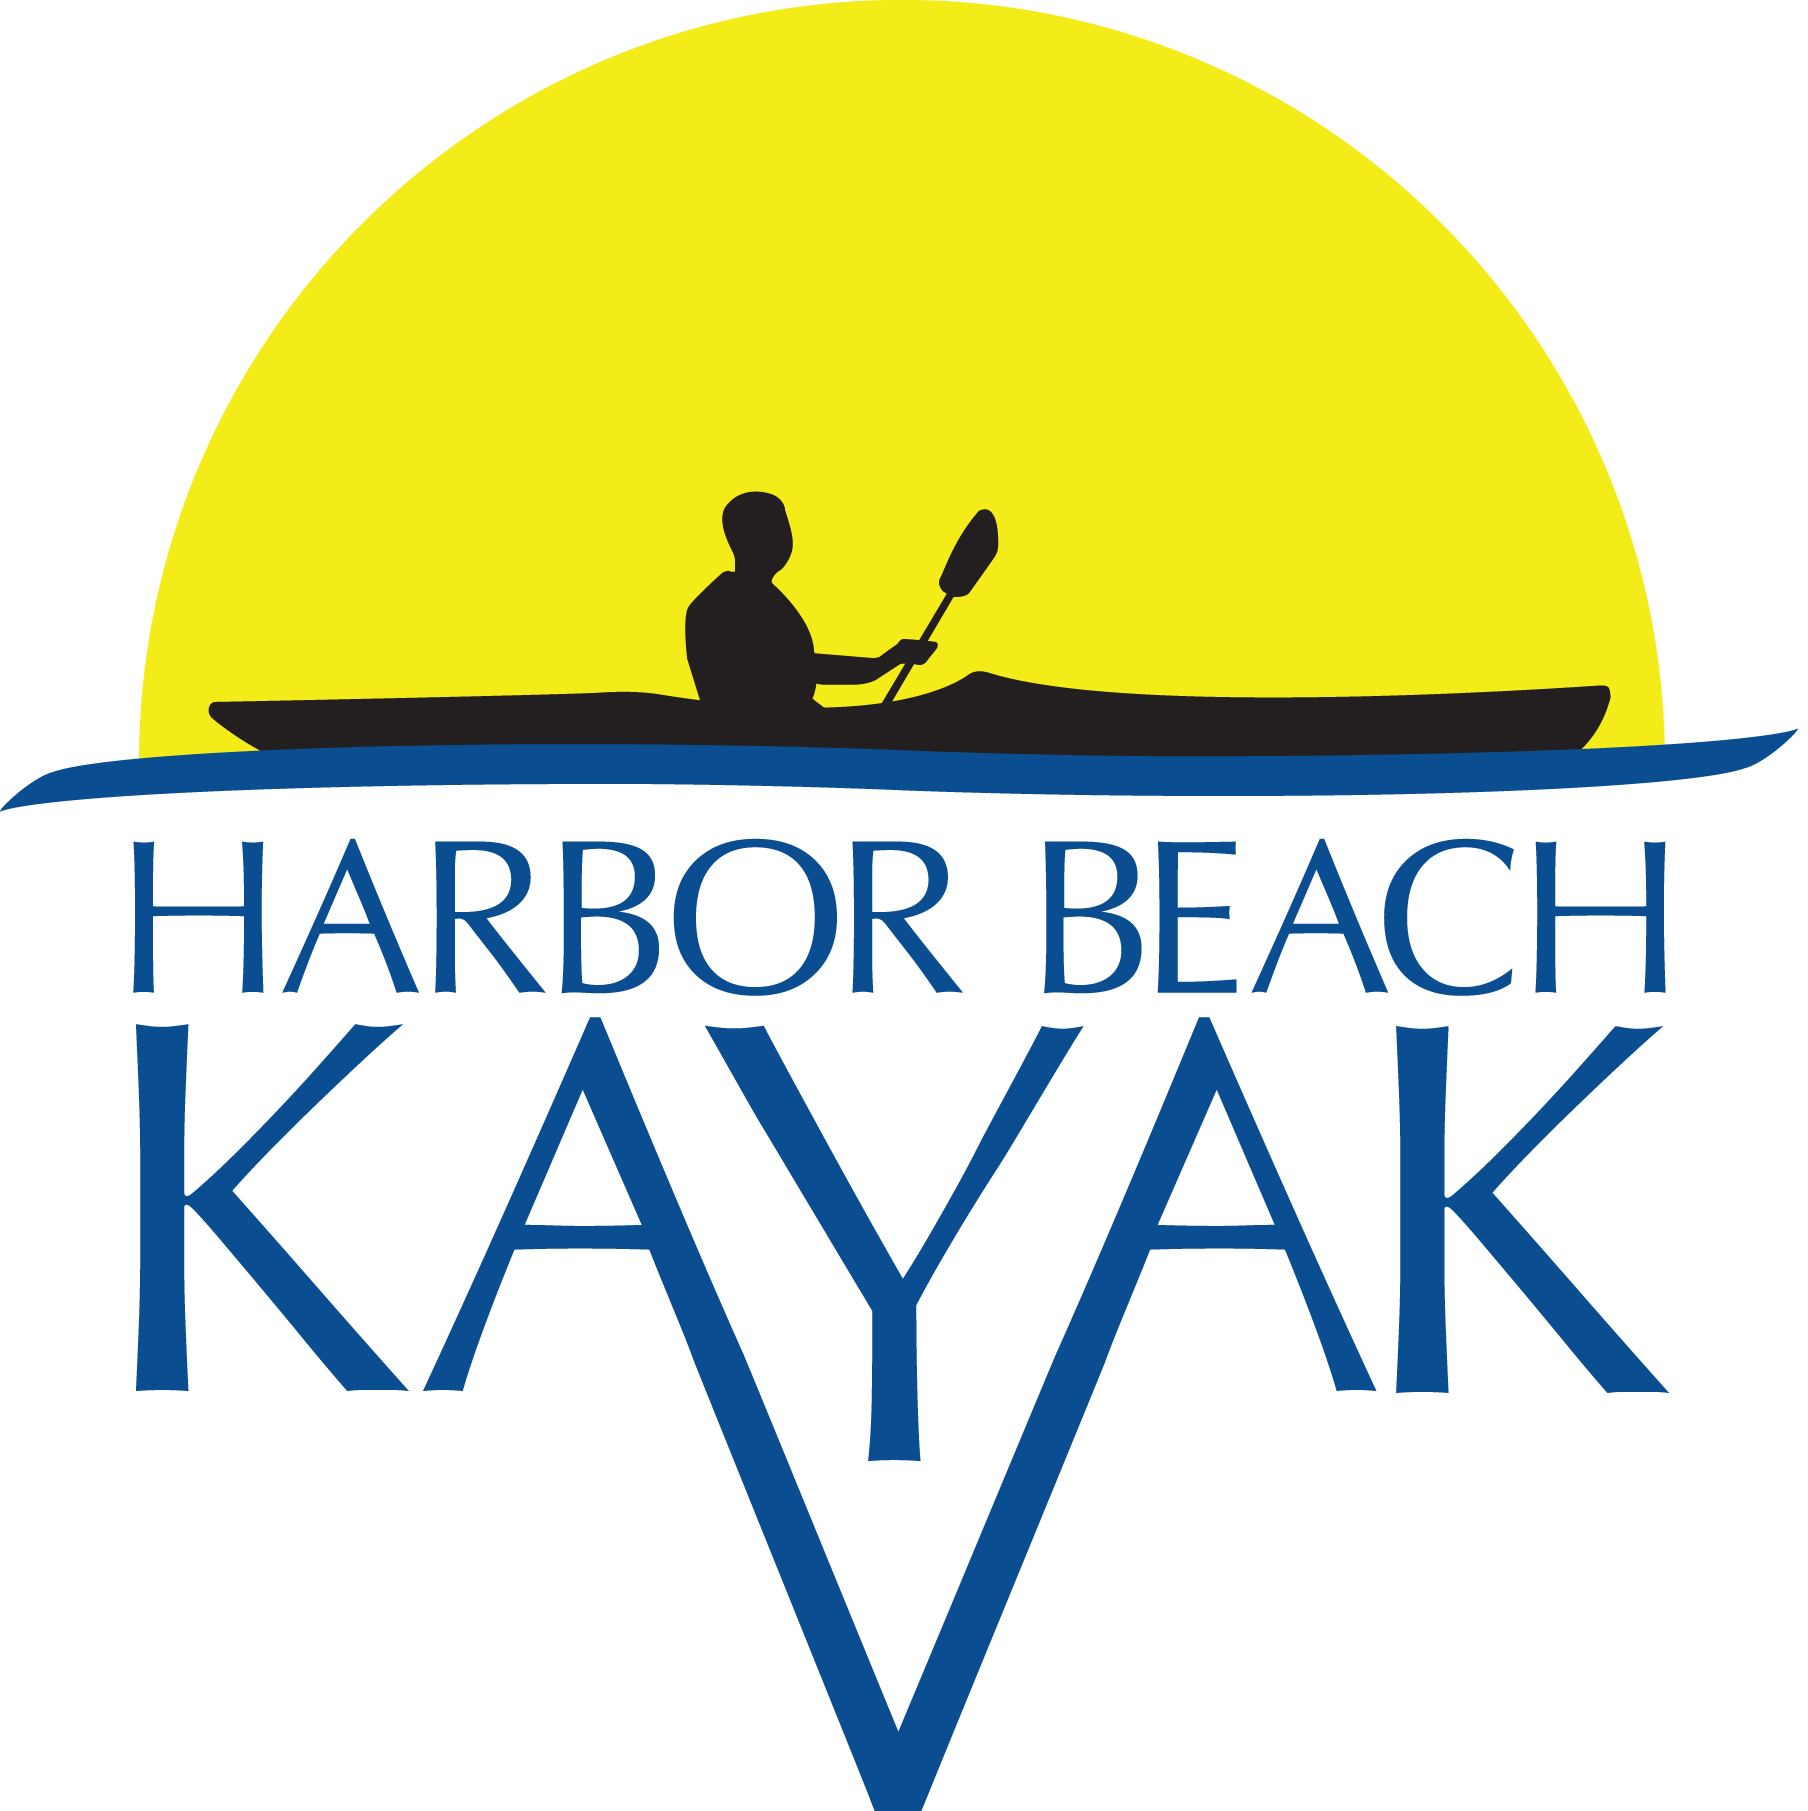 Harbor Beach Kayak